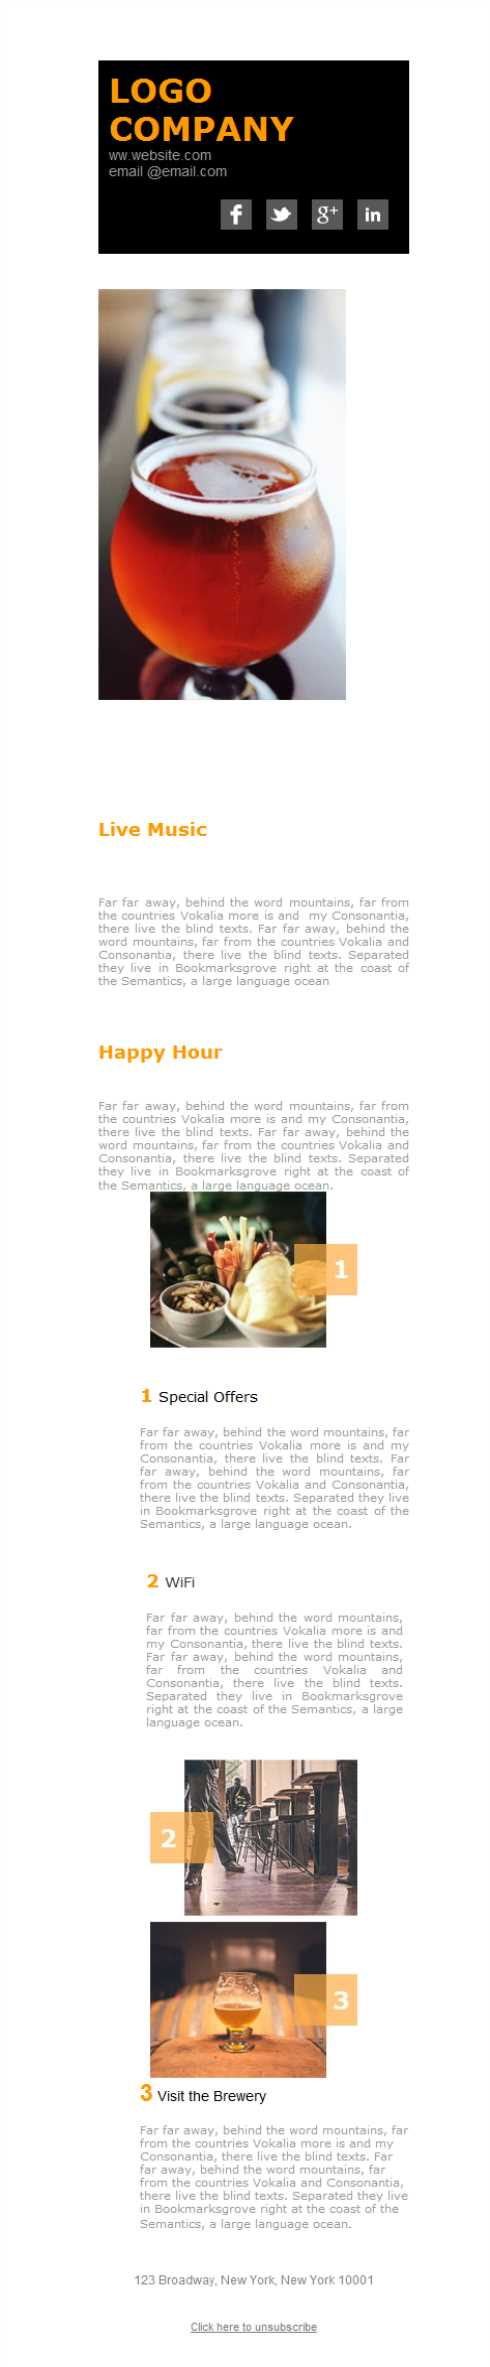 Templates Emailing Brewery Happy Hour Sarbacane